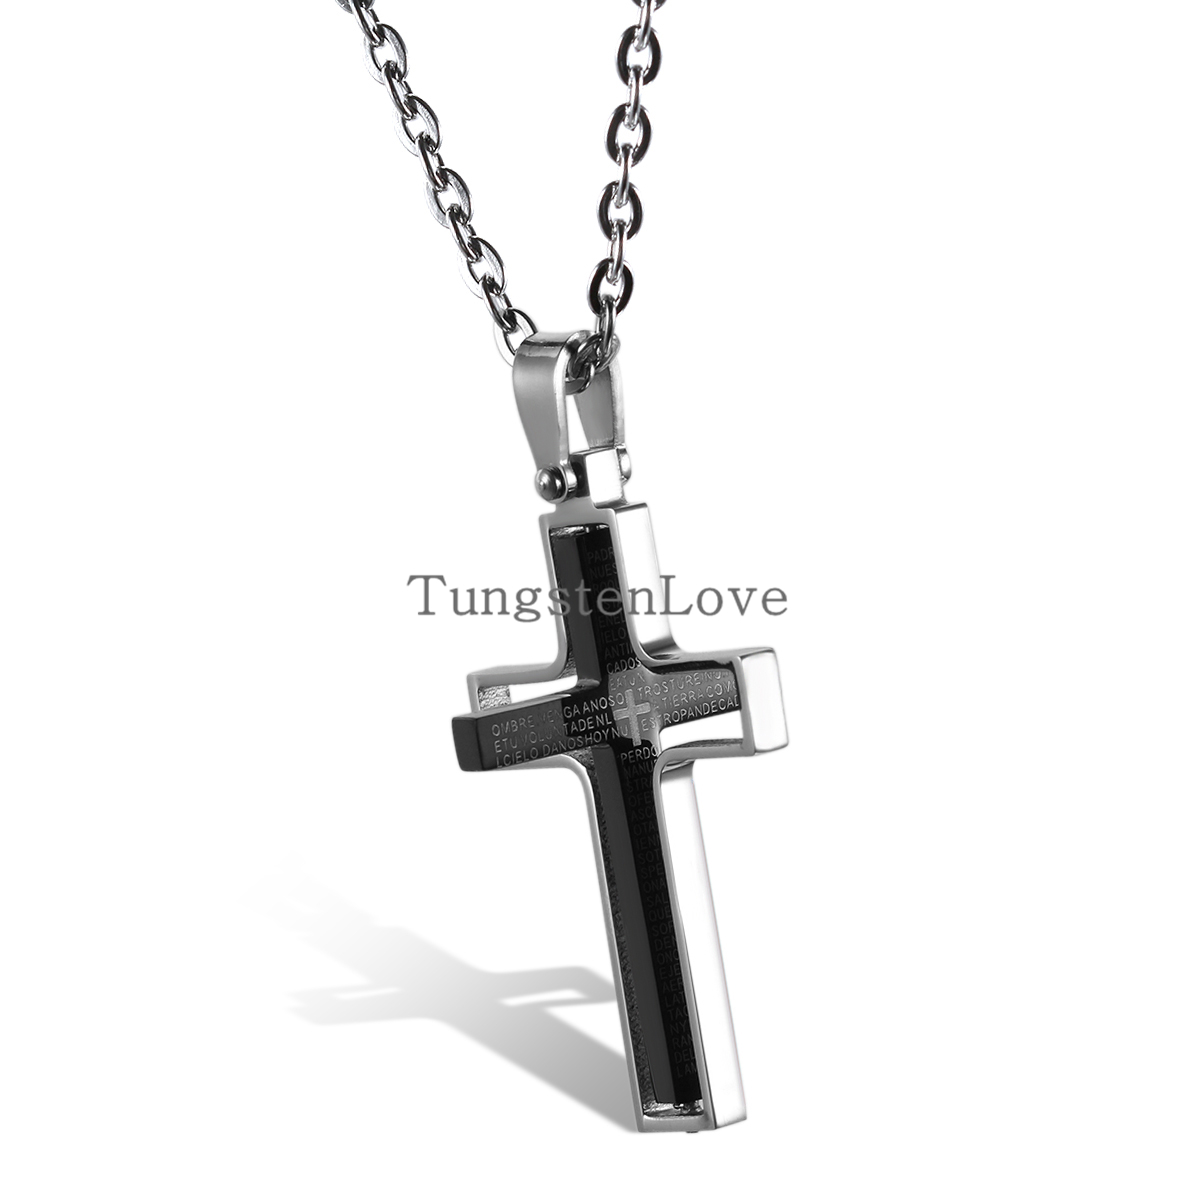 New Personality Rotatable Stainless Steel Mens Womens Spanish Lord's Prayer Cross Pendant Necklace Black Color collar hombre(China (Mainland))